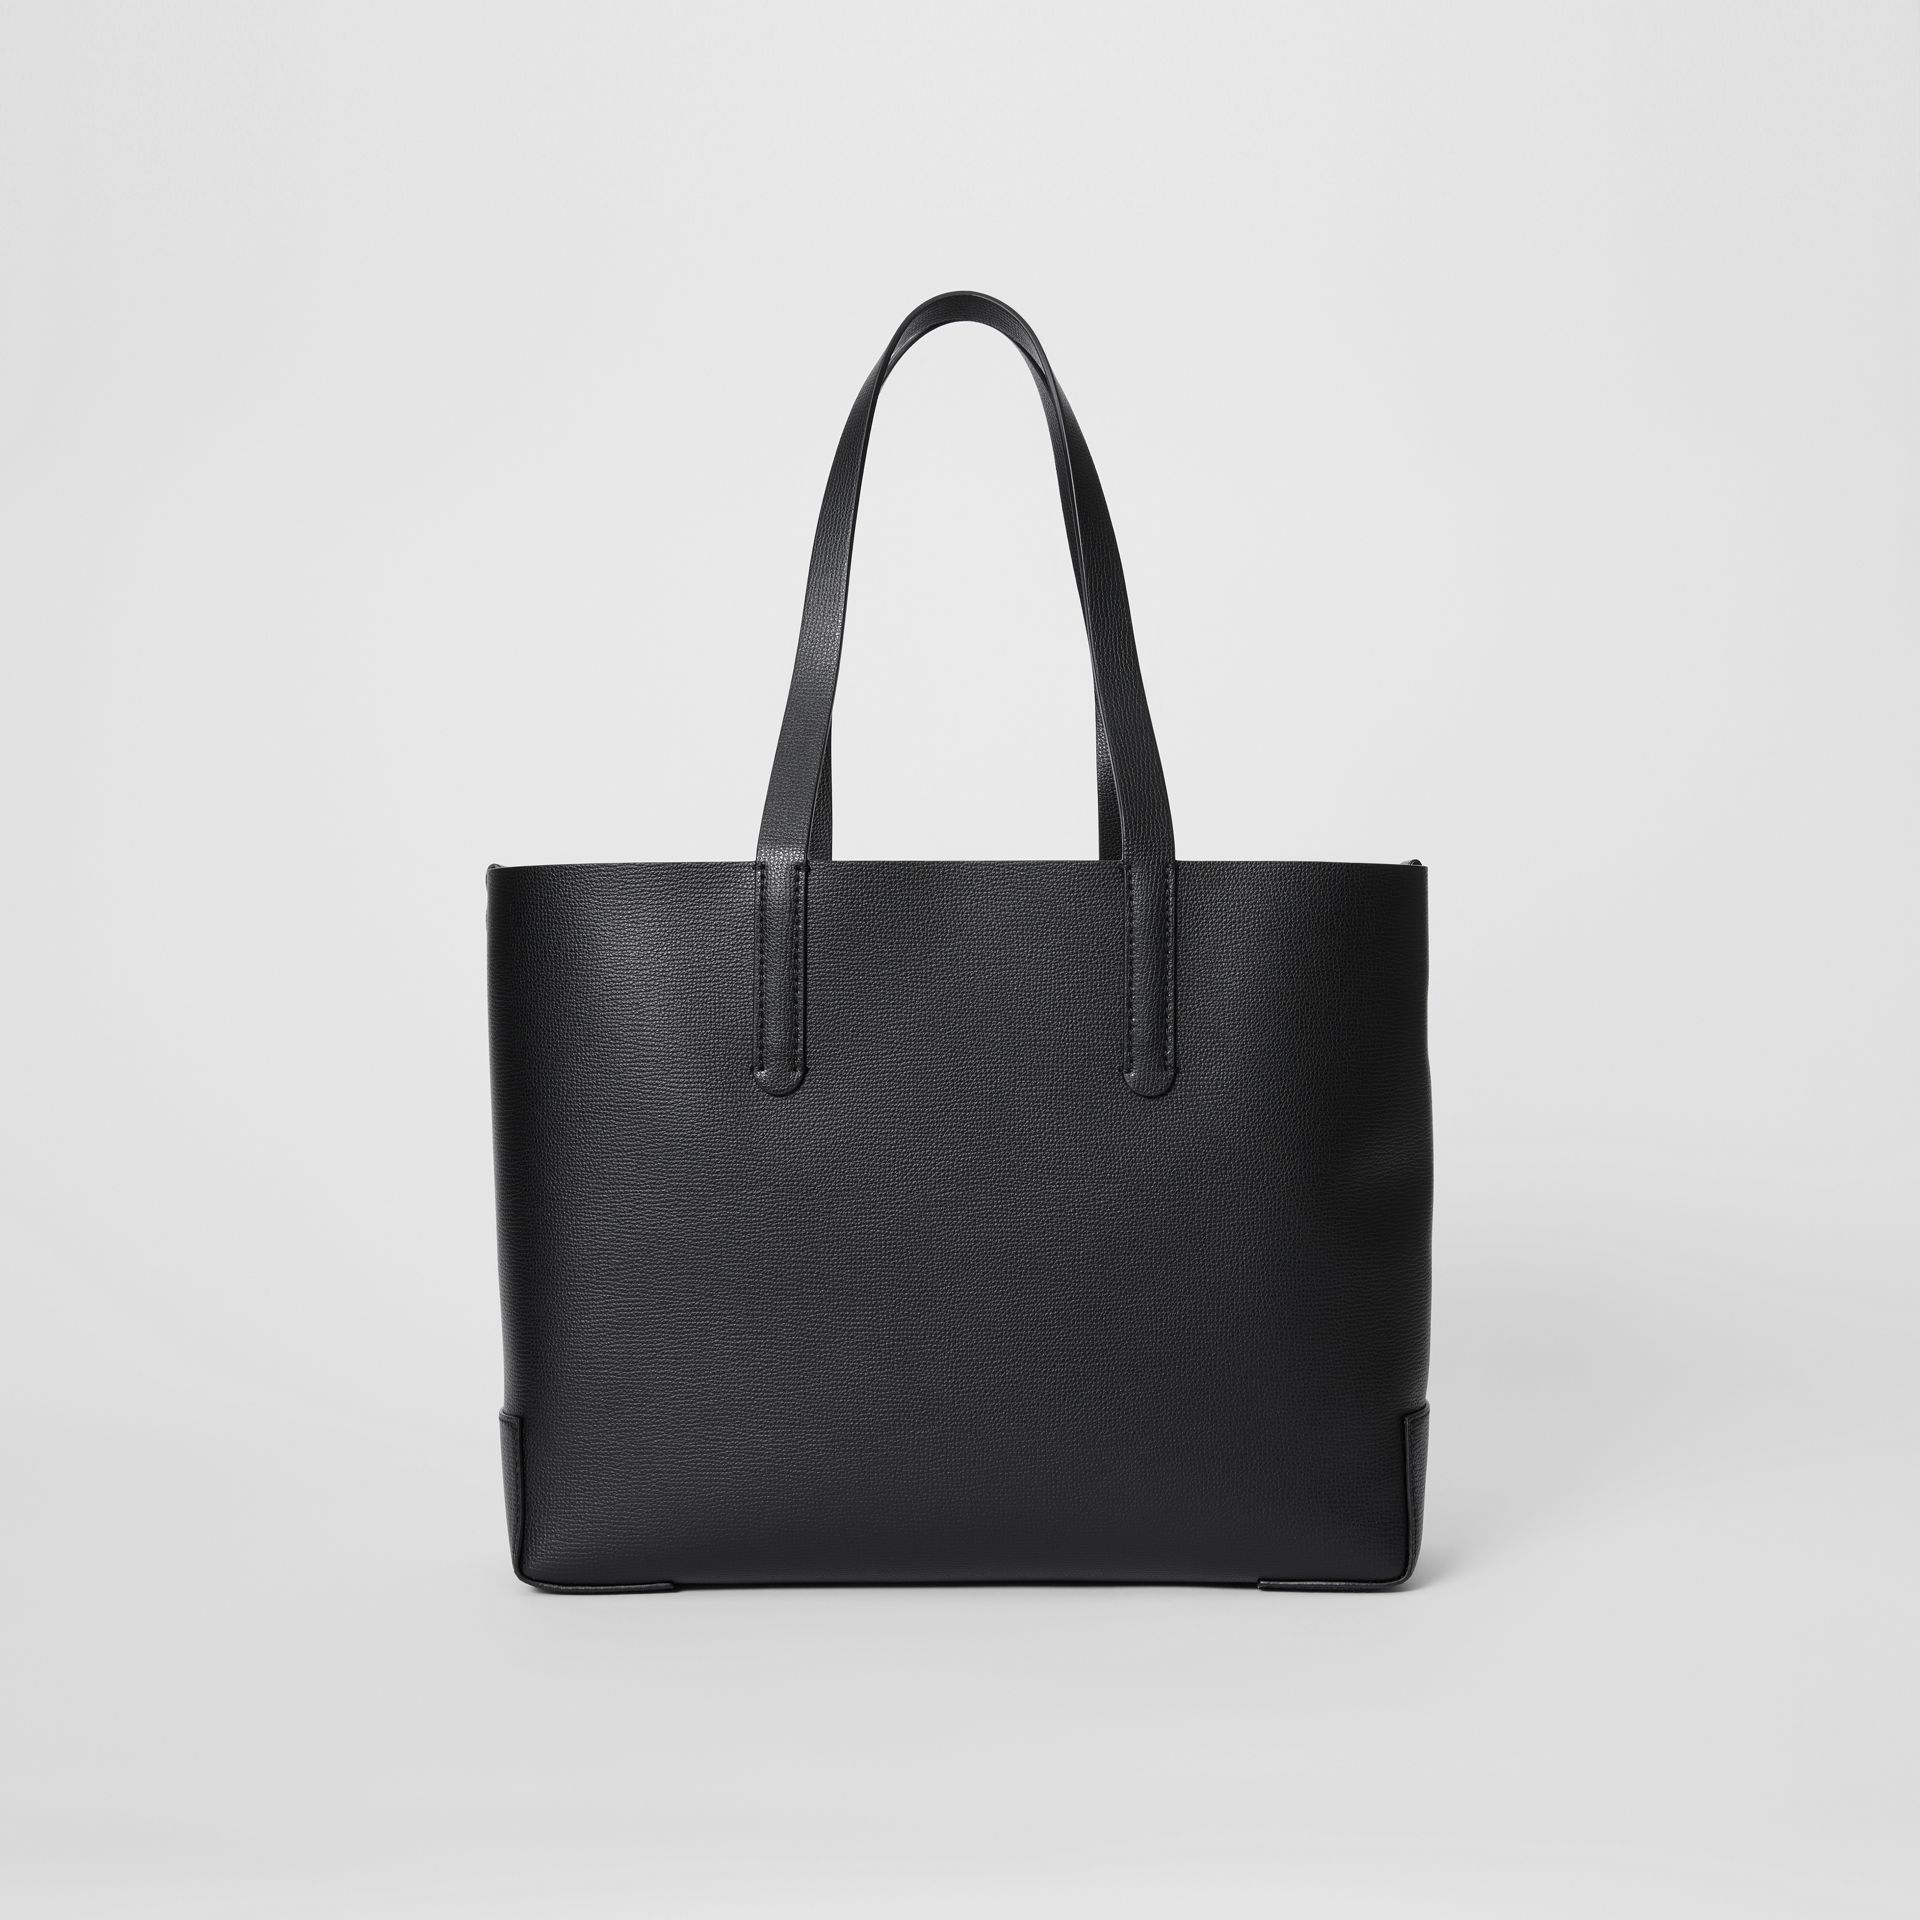 Embossed Monogram Motif Leather Tote in Black - Women | Burberry - gallery image 5